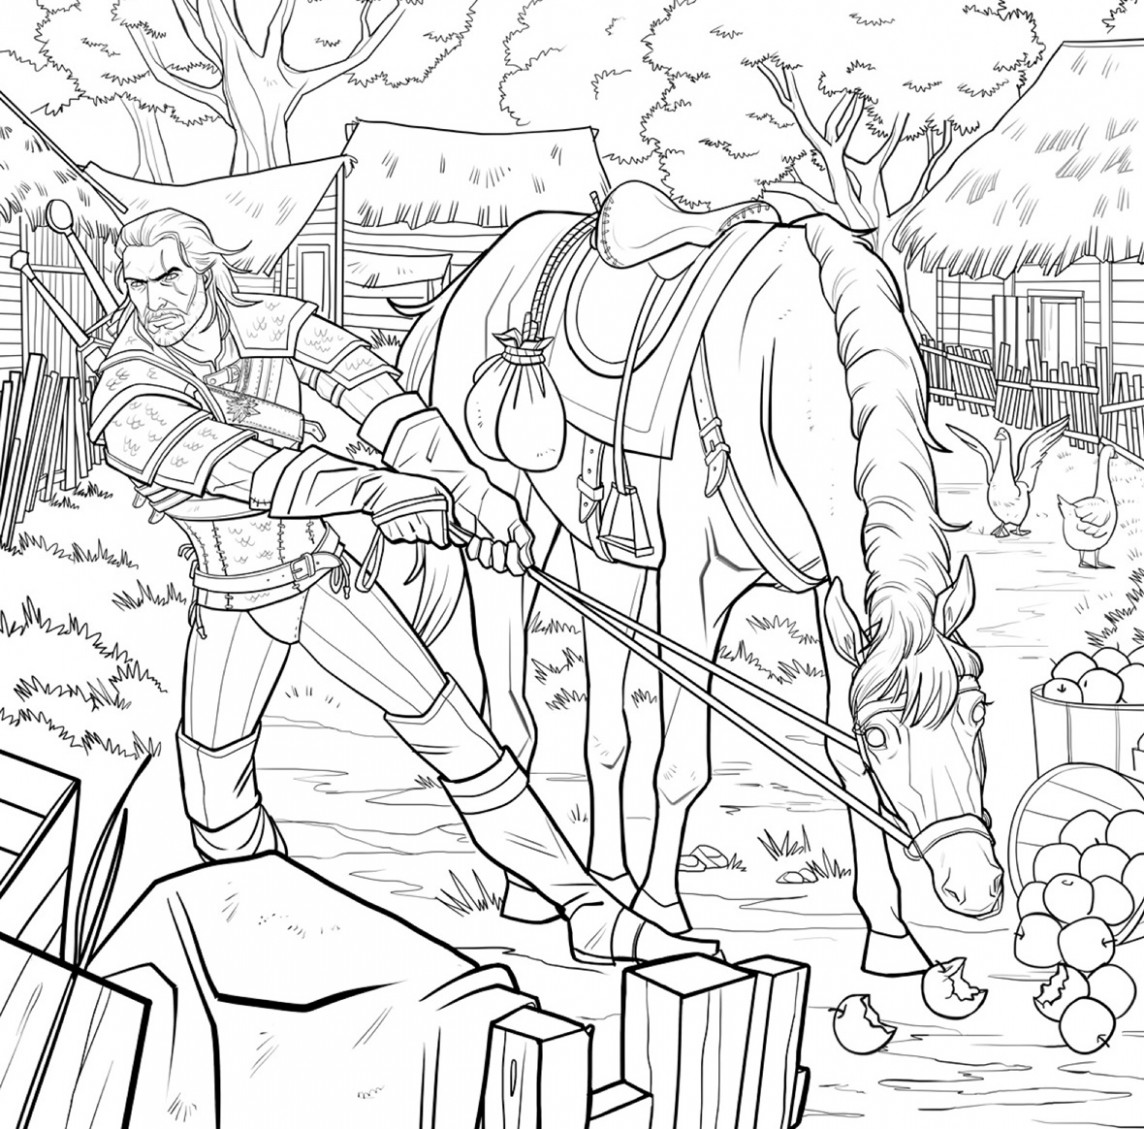 Finally, the Witcher Gets Its Own Coloring Book Complete With Bath ..